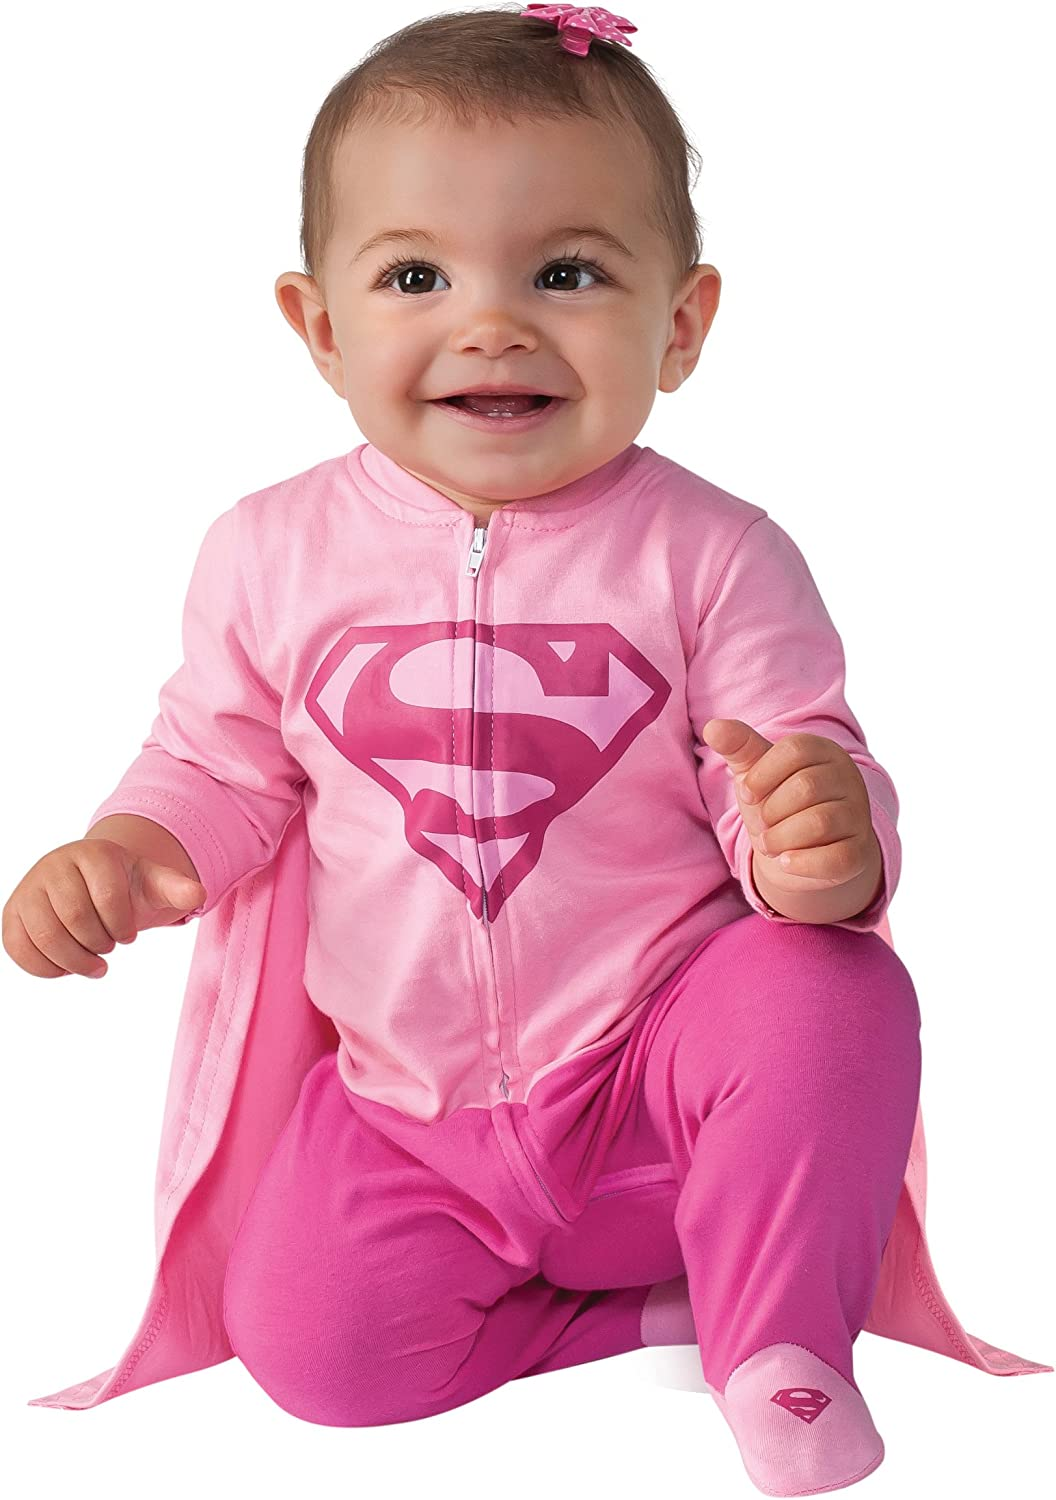 Rubies Costume Baby Girls DC Comics Superhero Style Baby Supergirl Costume